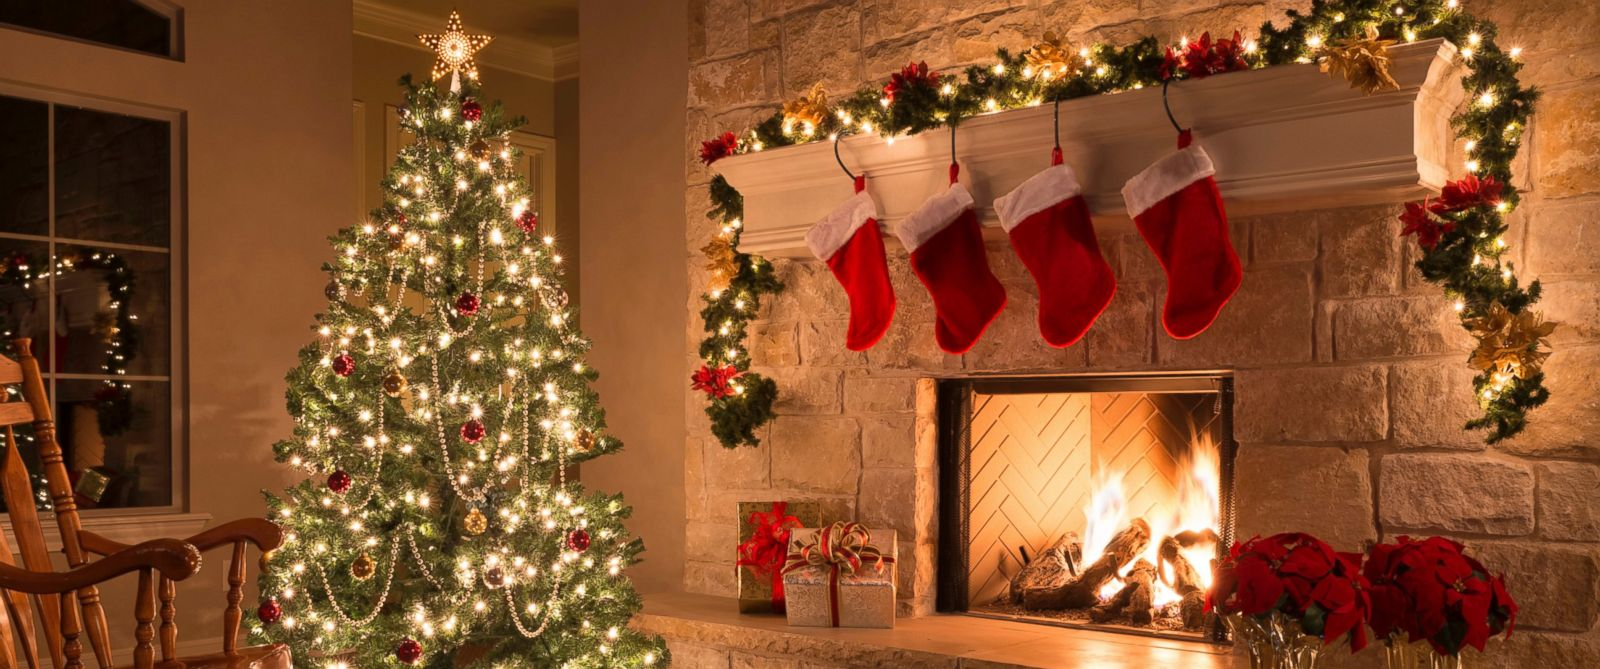 Holiday Remodeling Ideas